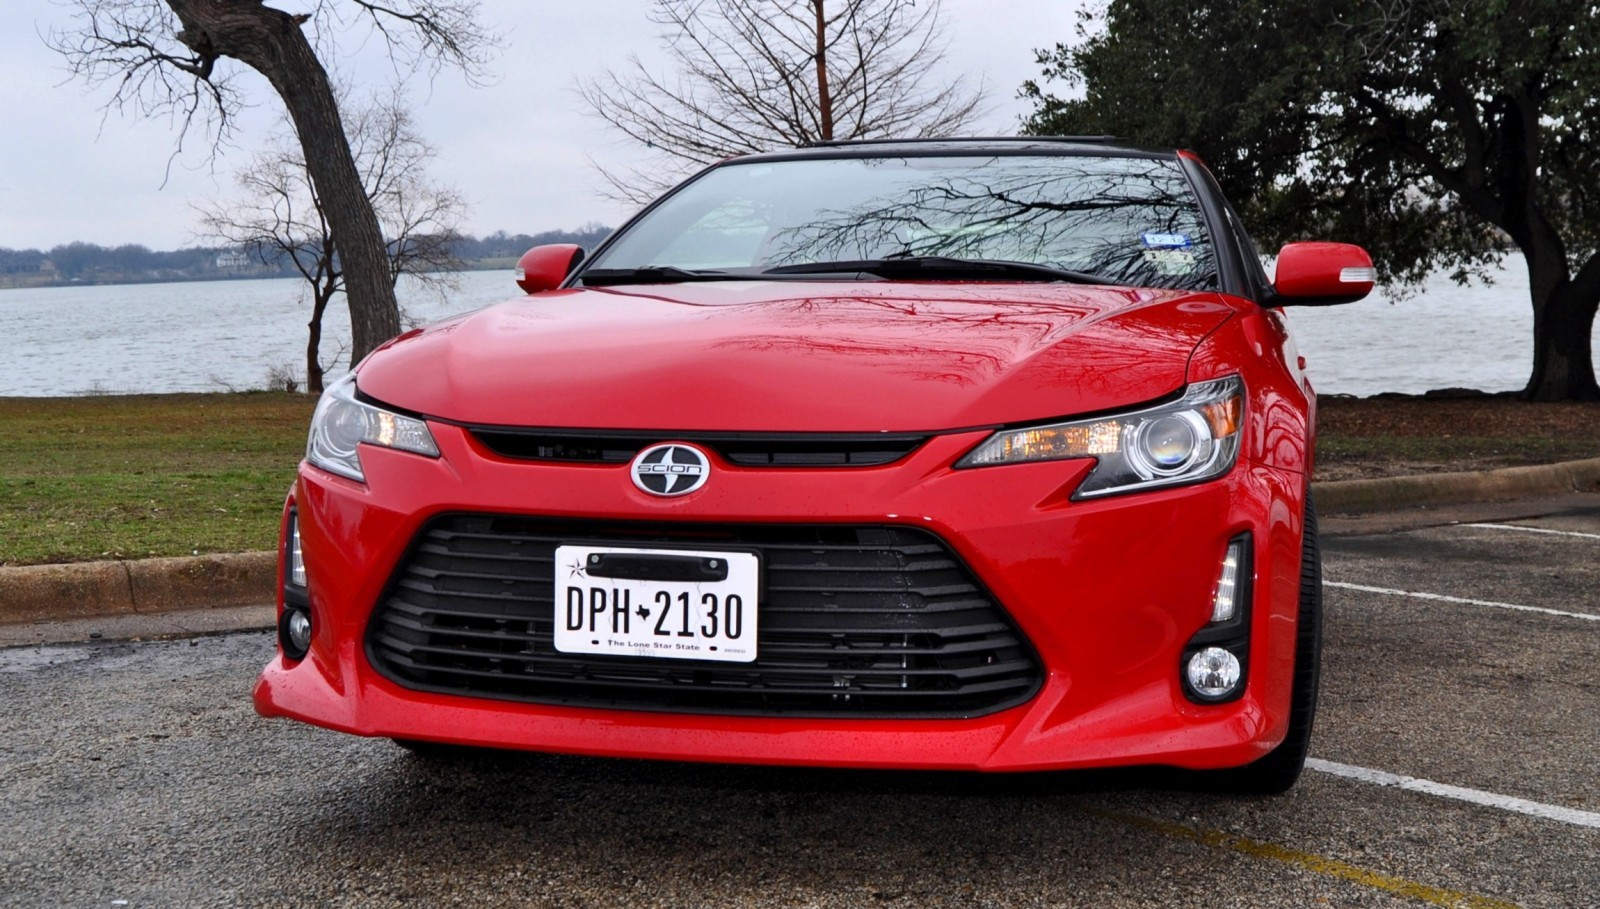 Road Test Review - 2015 Scion tC 6-Speed With TRD Performance Parts 106